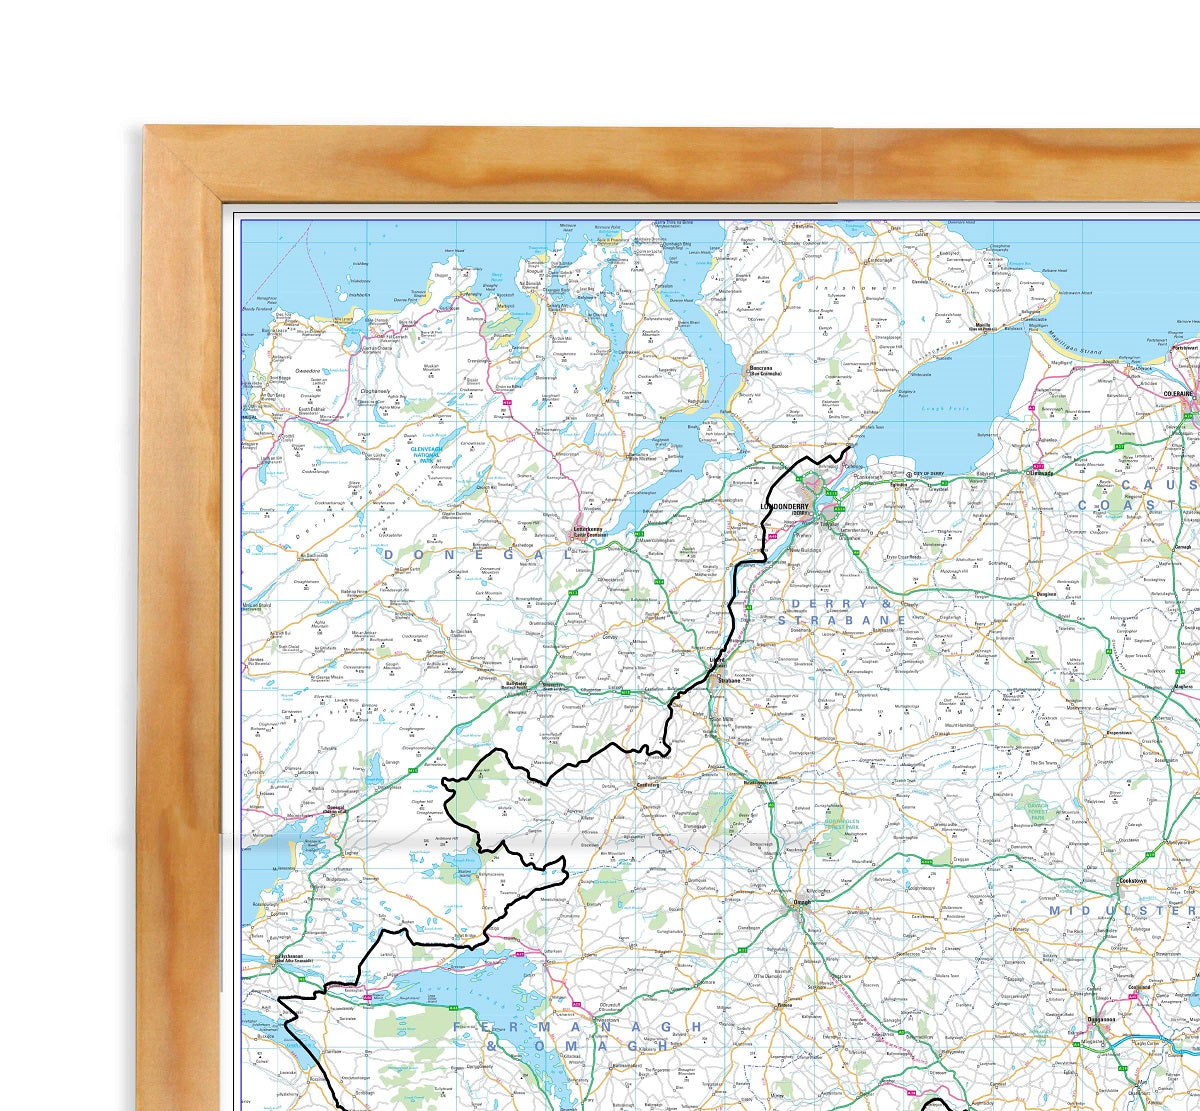 Northern Ireland Road Map - Wall Map of Northern Ireland on map of northeast us, map of sweden, map of ring of kerry, map of denmark, map of london, map of dublin, map of skellig islands, map of prince edward island, map of united states, map of united kingdom, map of eastern hemisphere, map of netherlands, map of japan, map of hong kong, map of european countries, map of scotland, map of british isles, map of britain, map of yugoslavia, map of philippines,